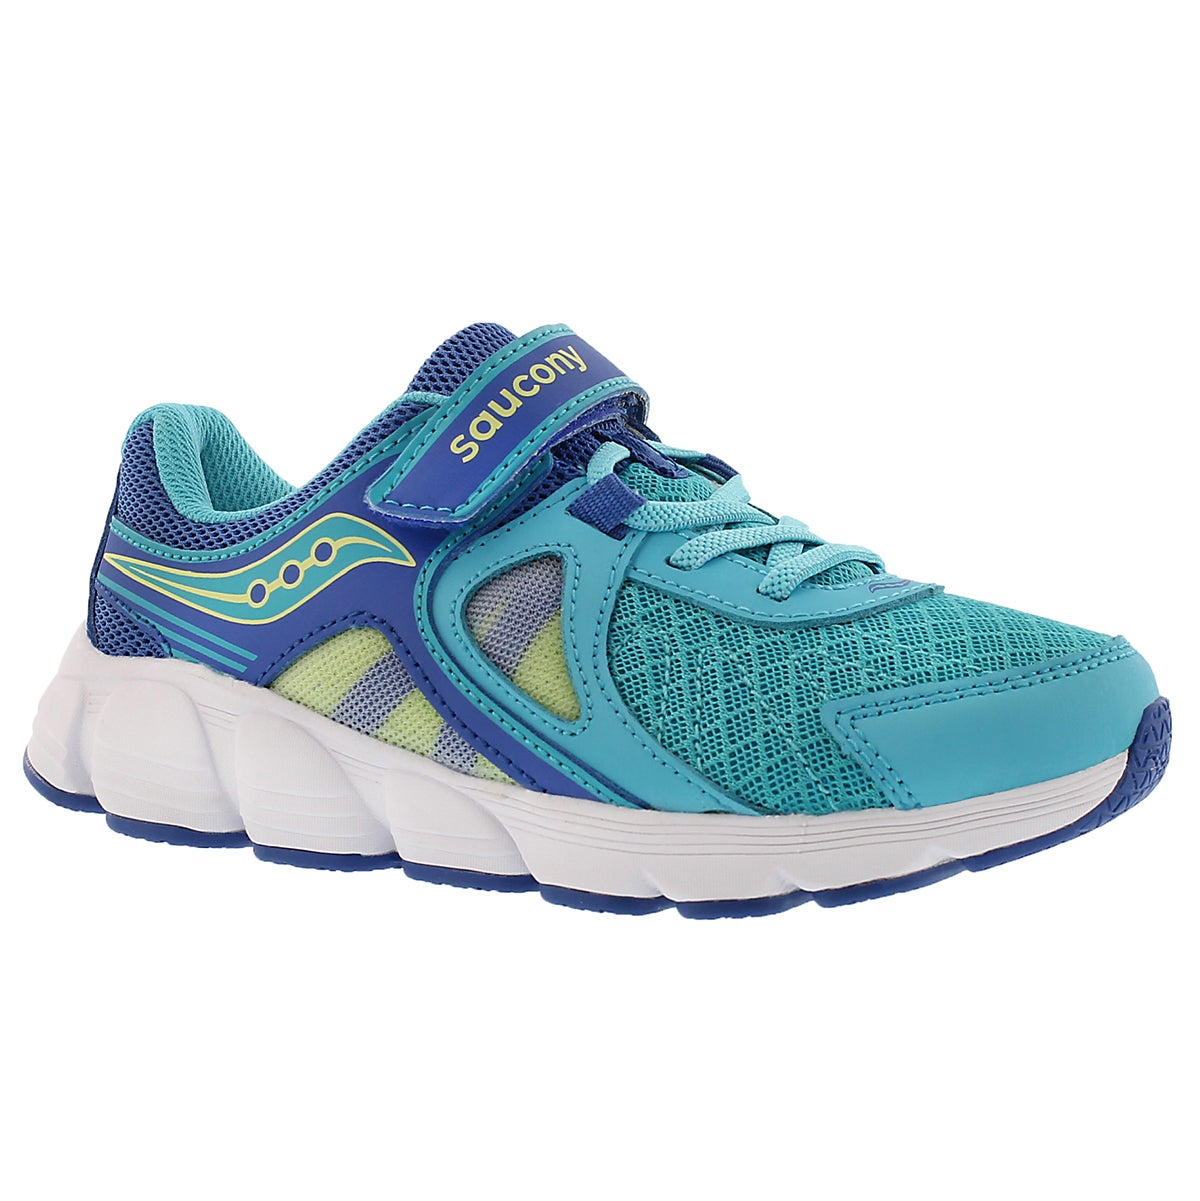 Girls' KOTARO 3 turq/citron running shoes